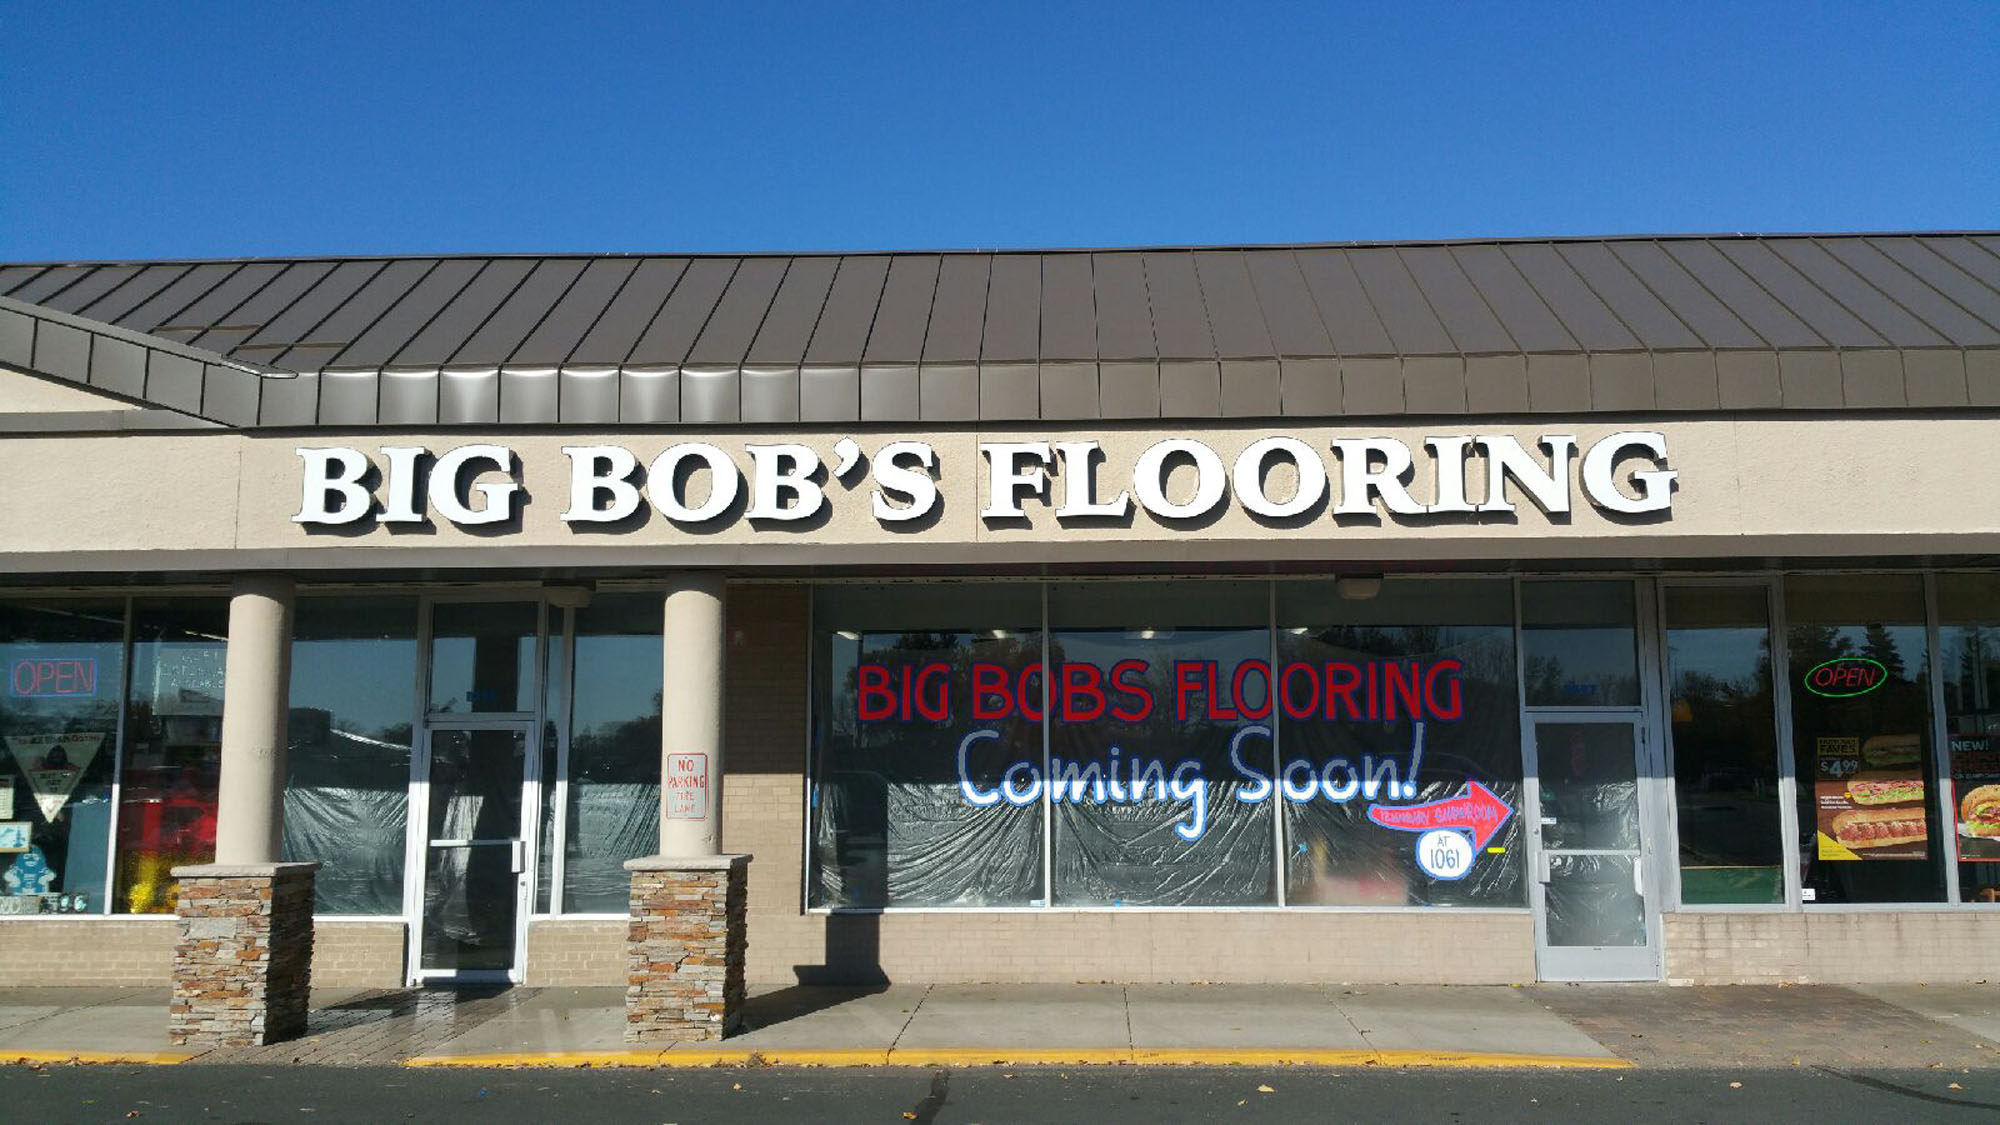 Big Bob's Flooring Fridley, Minnesota LED illuminated channel letters Direct mount to building